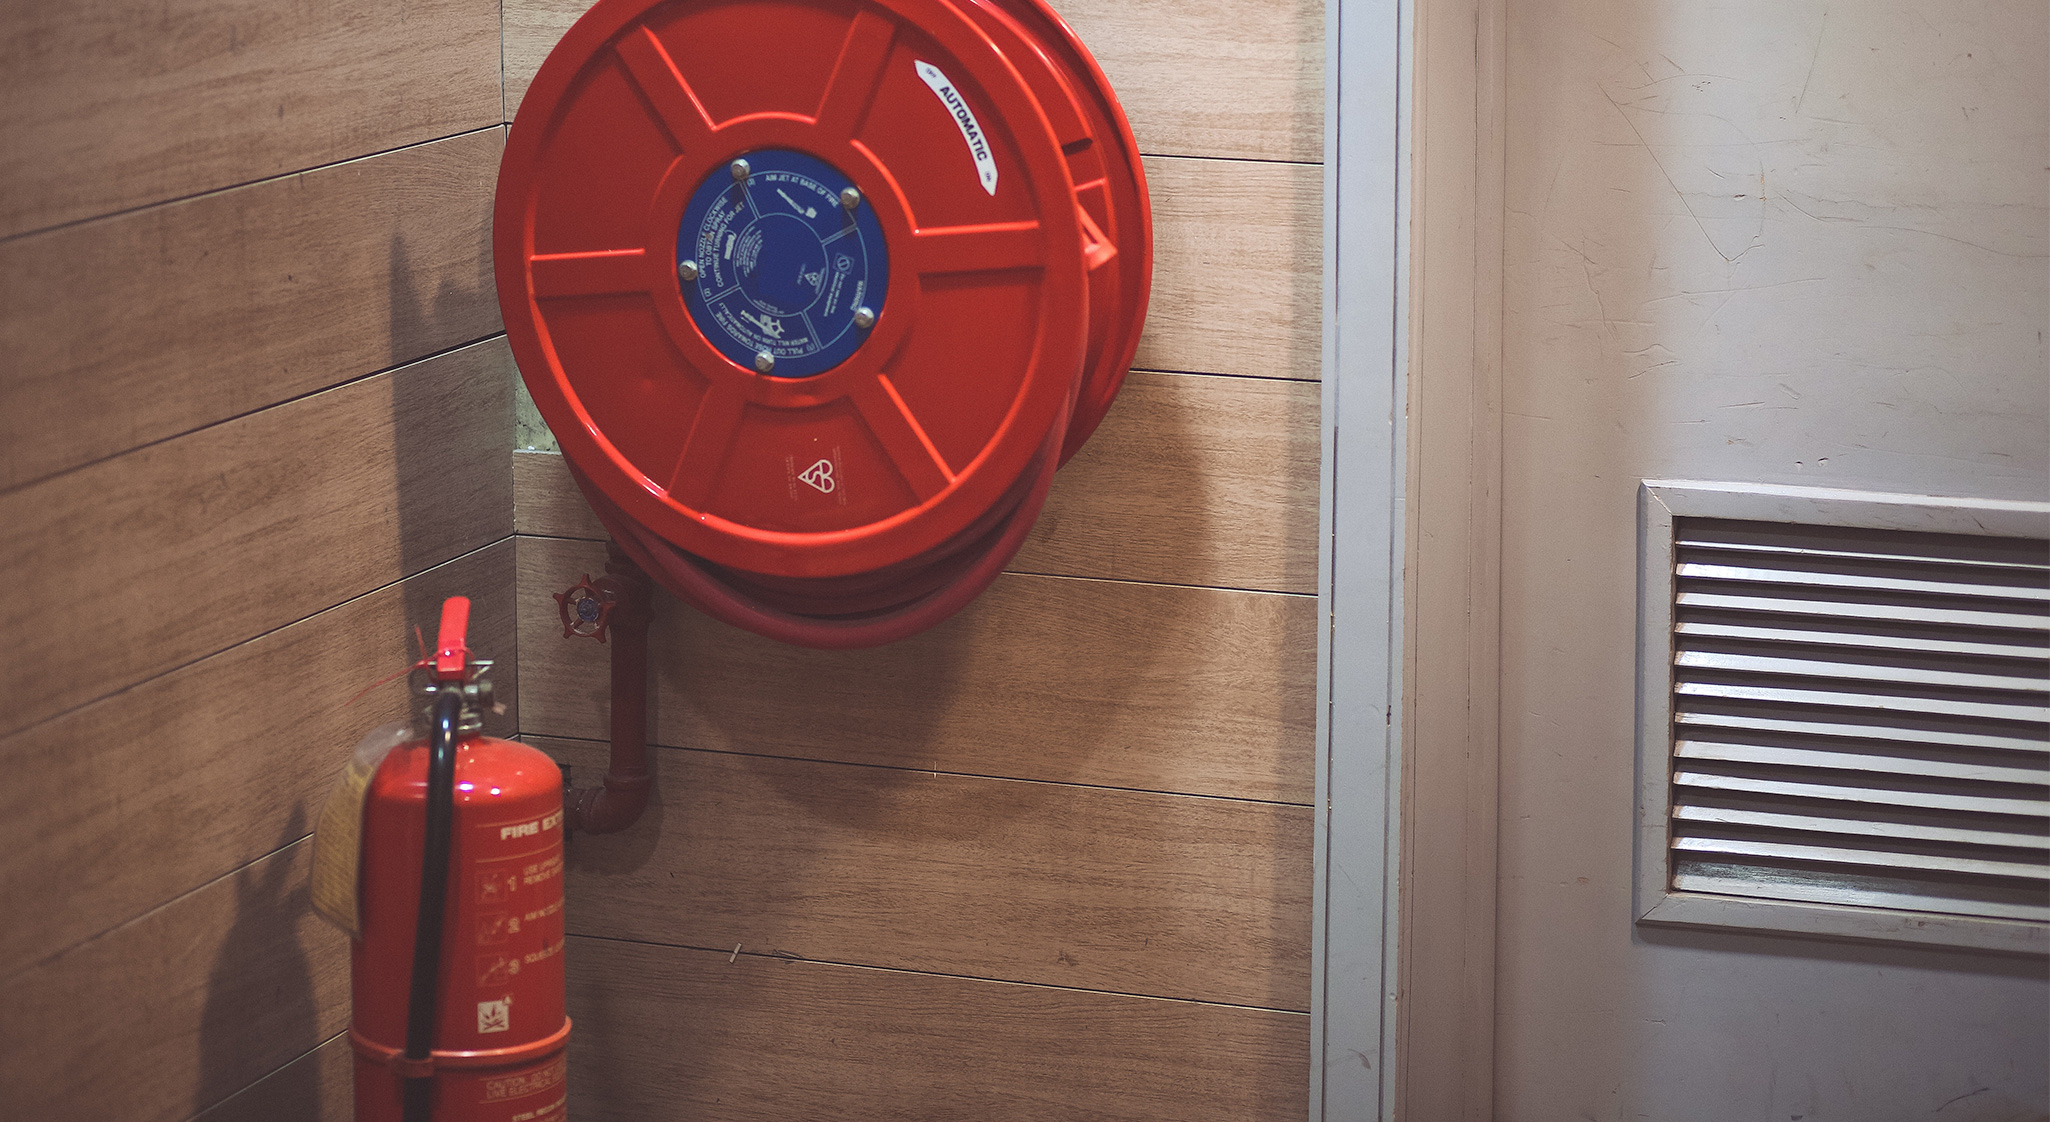 Fire Extinguisher Training Course Perth: Fire Training, Services & Equipment WA